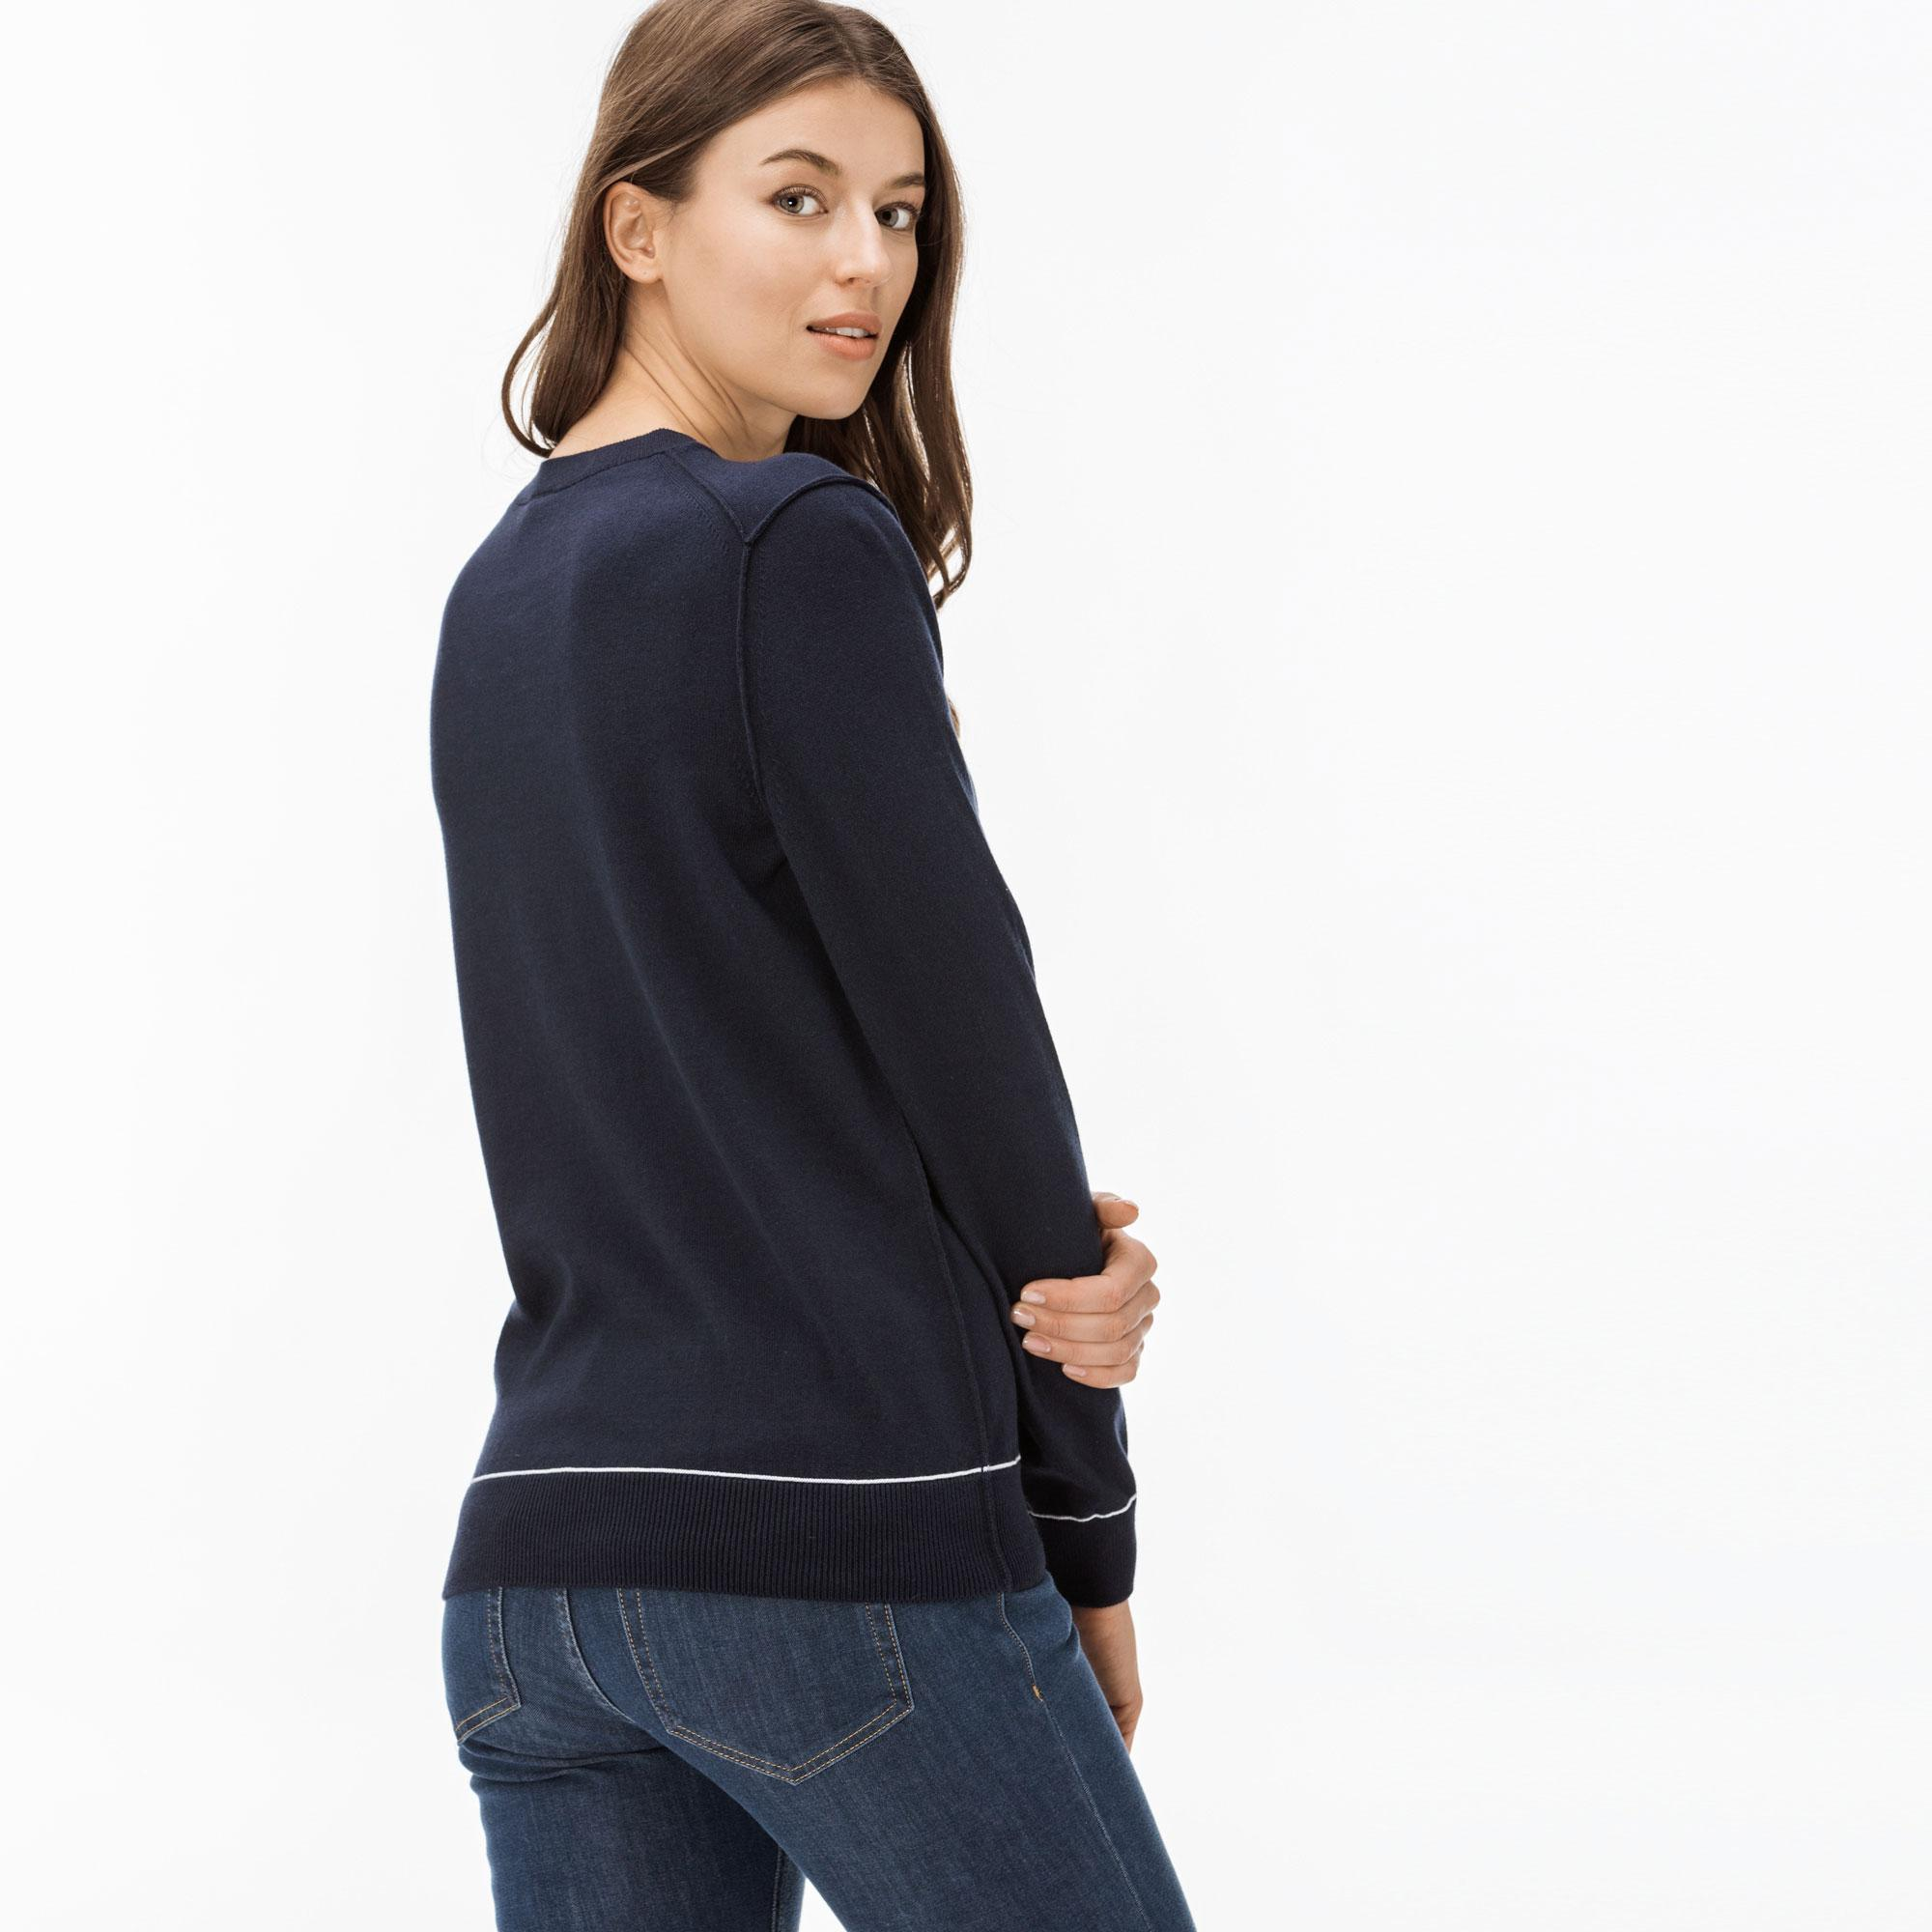 Lacoste L!VE Women's Sweater